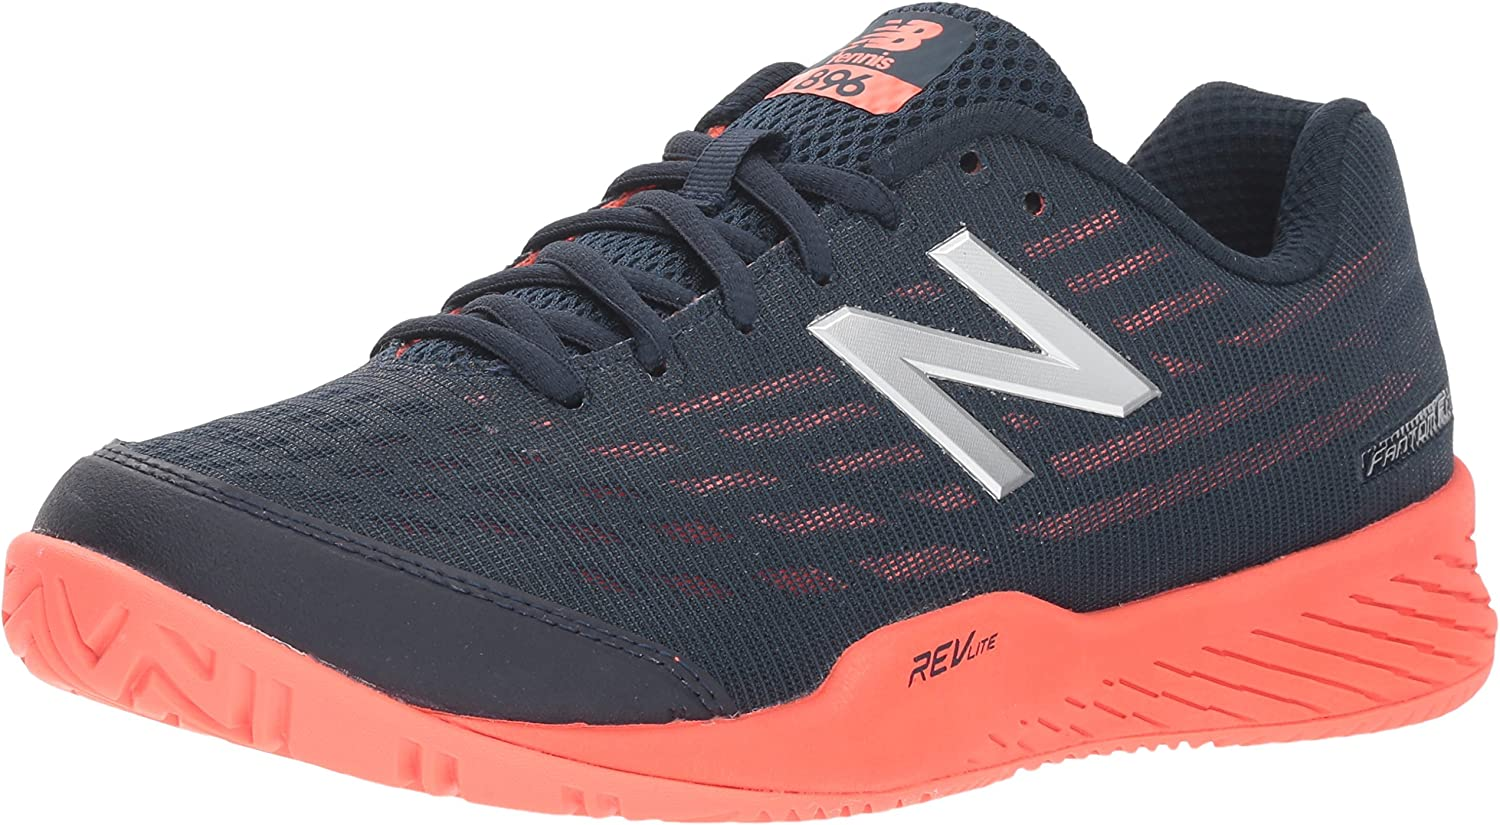 New Balance Womens 896v2 Hard Court Tennis shoes